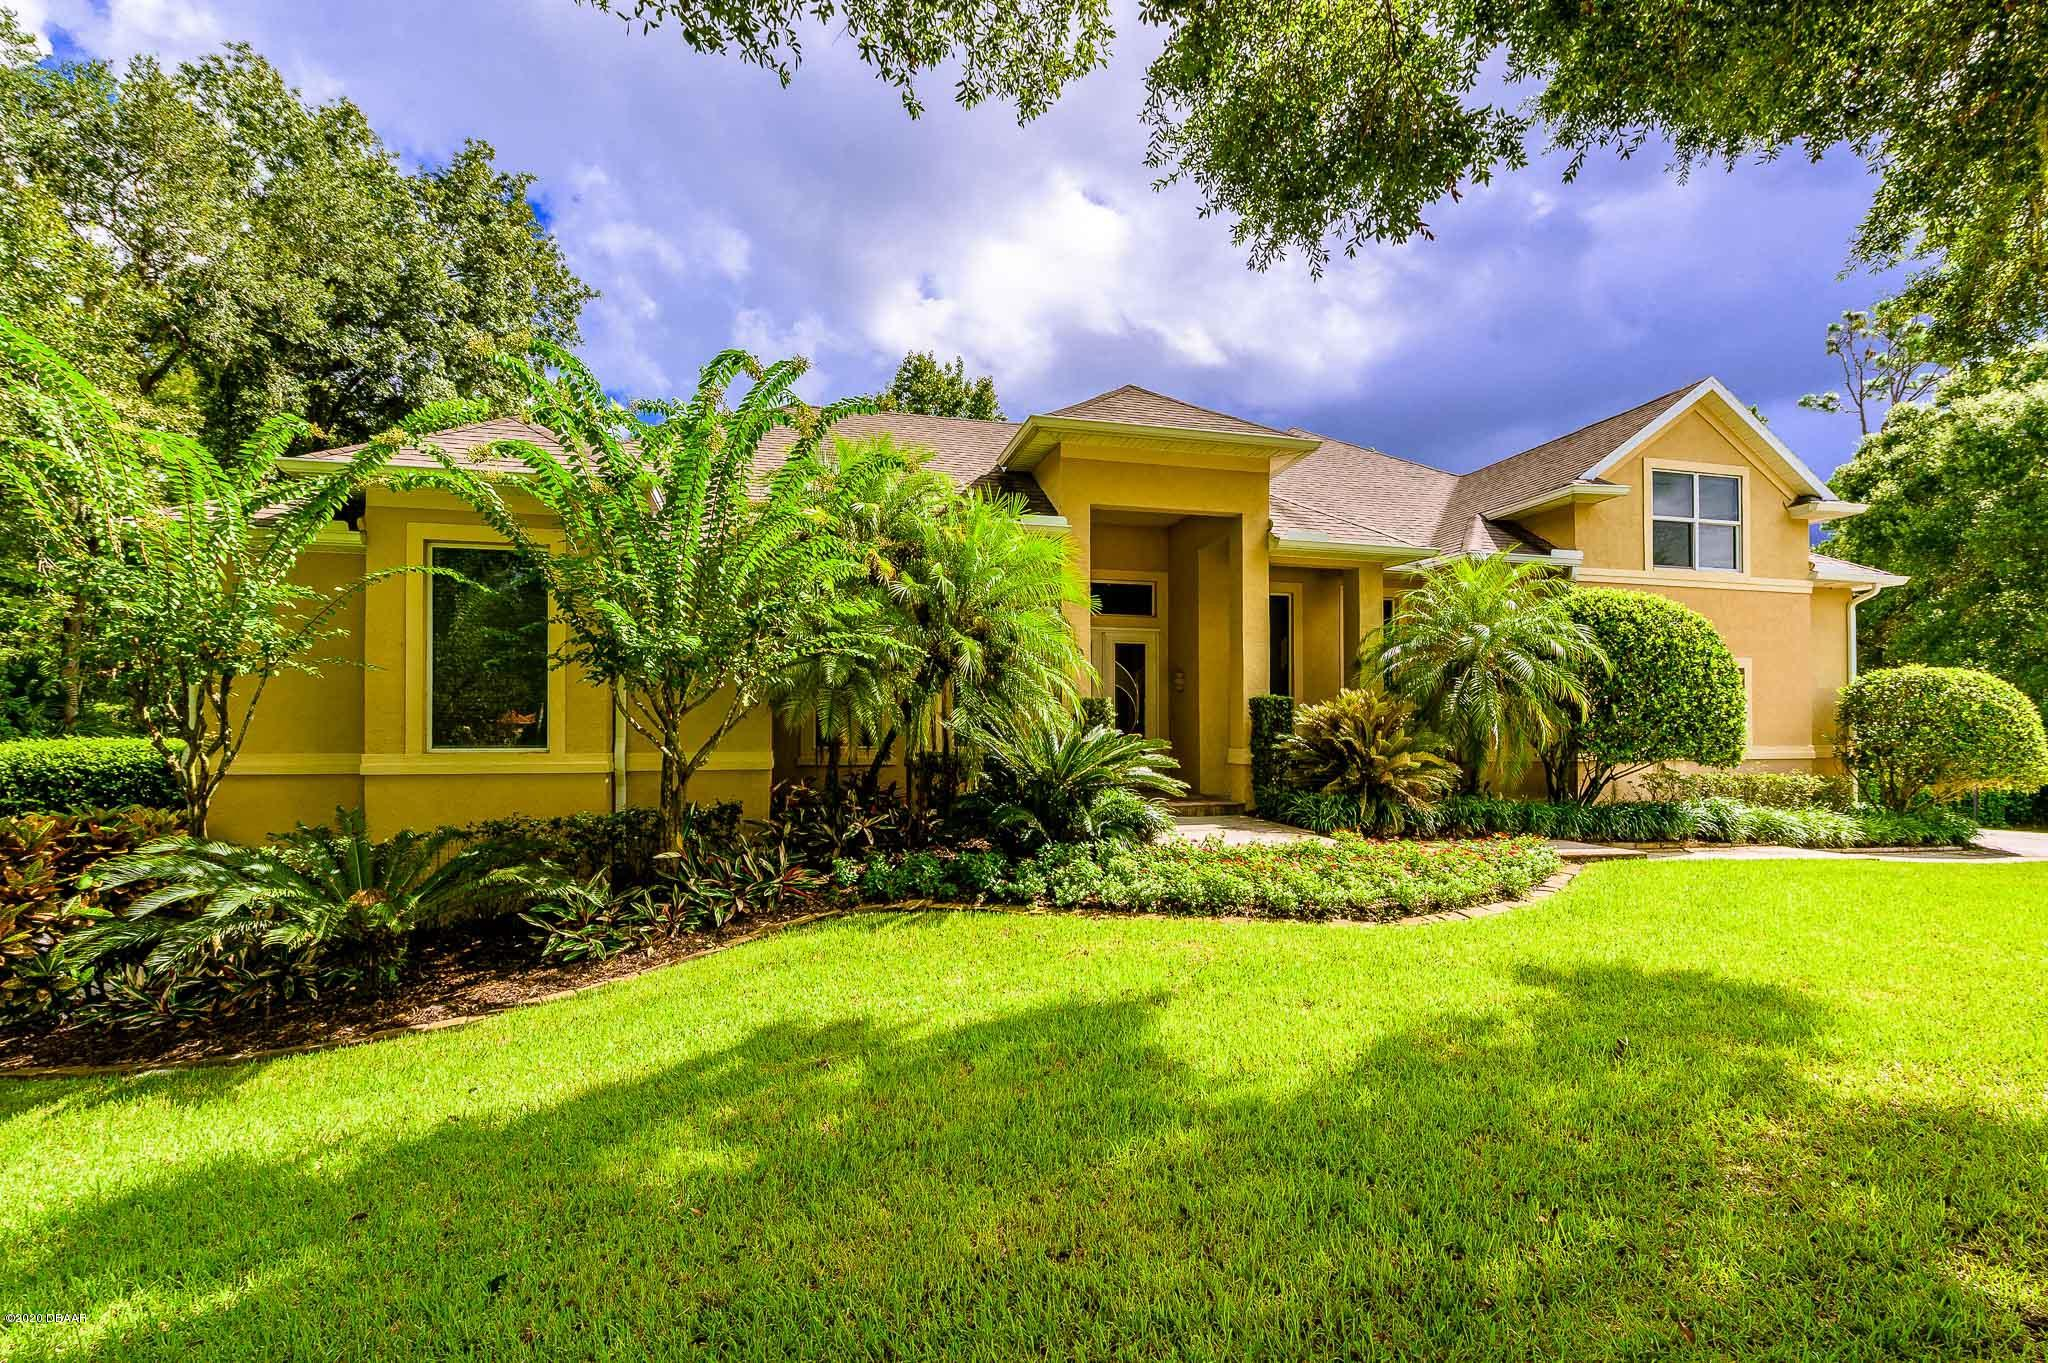 Photo of 40 Indian Springs Drive, Ormond Beach, FL 32174